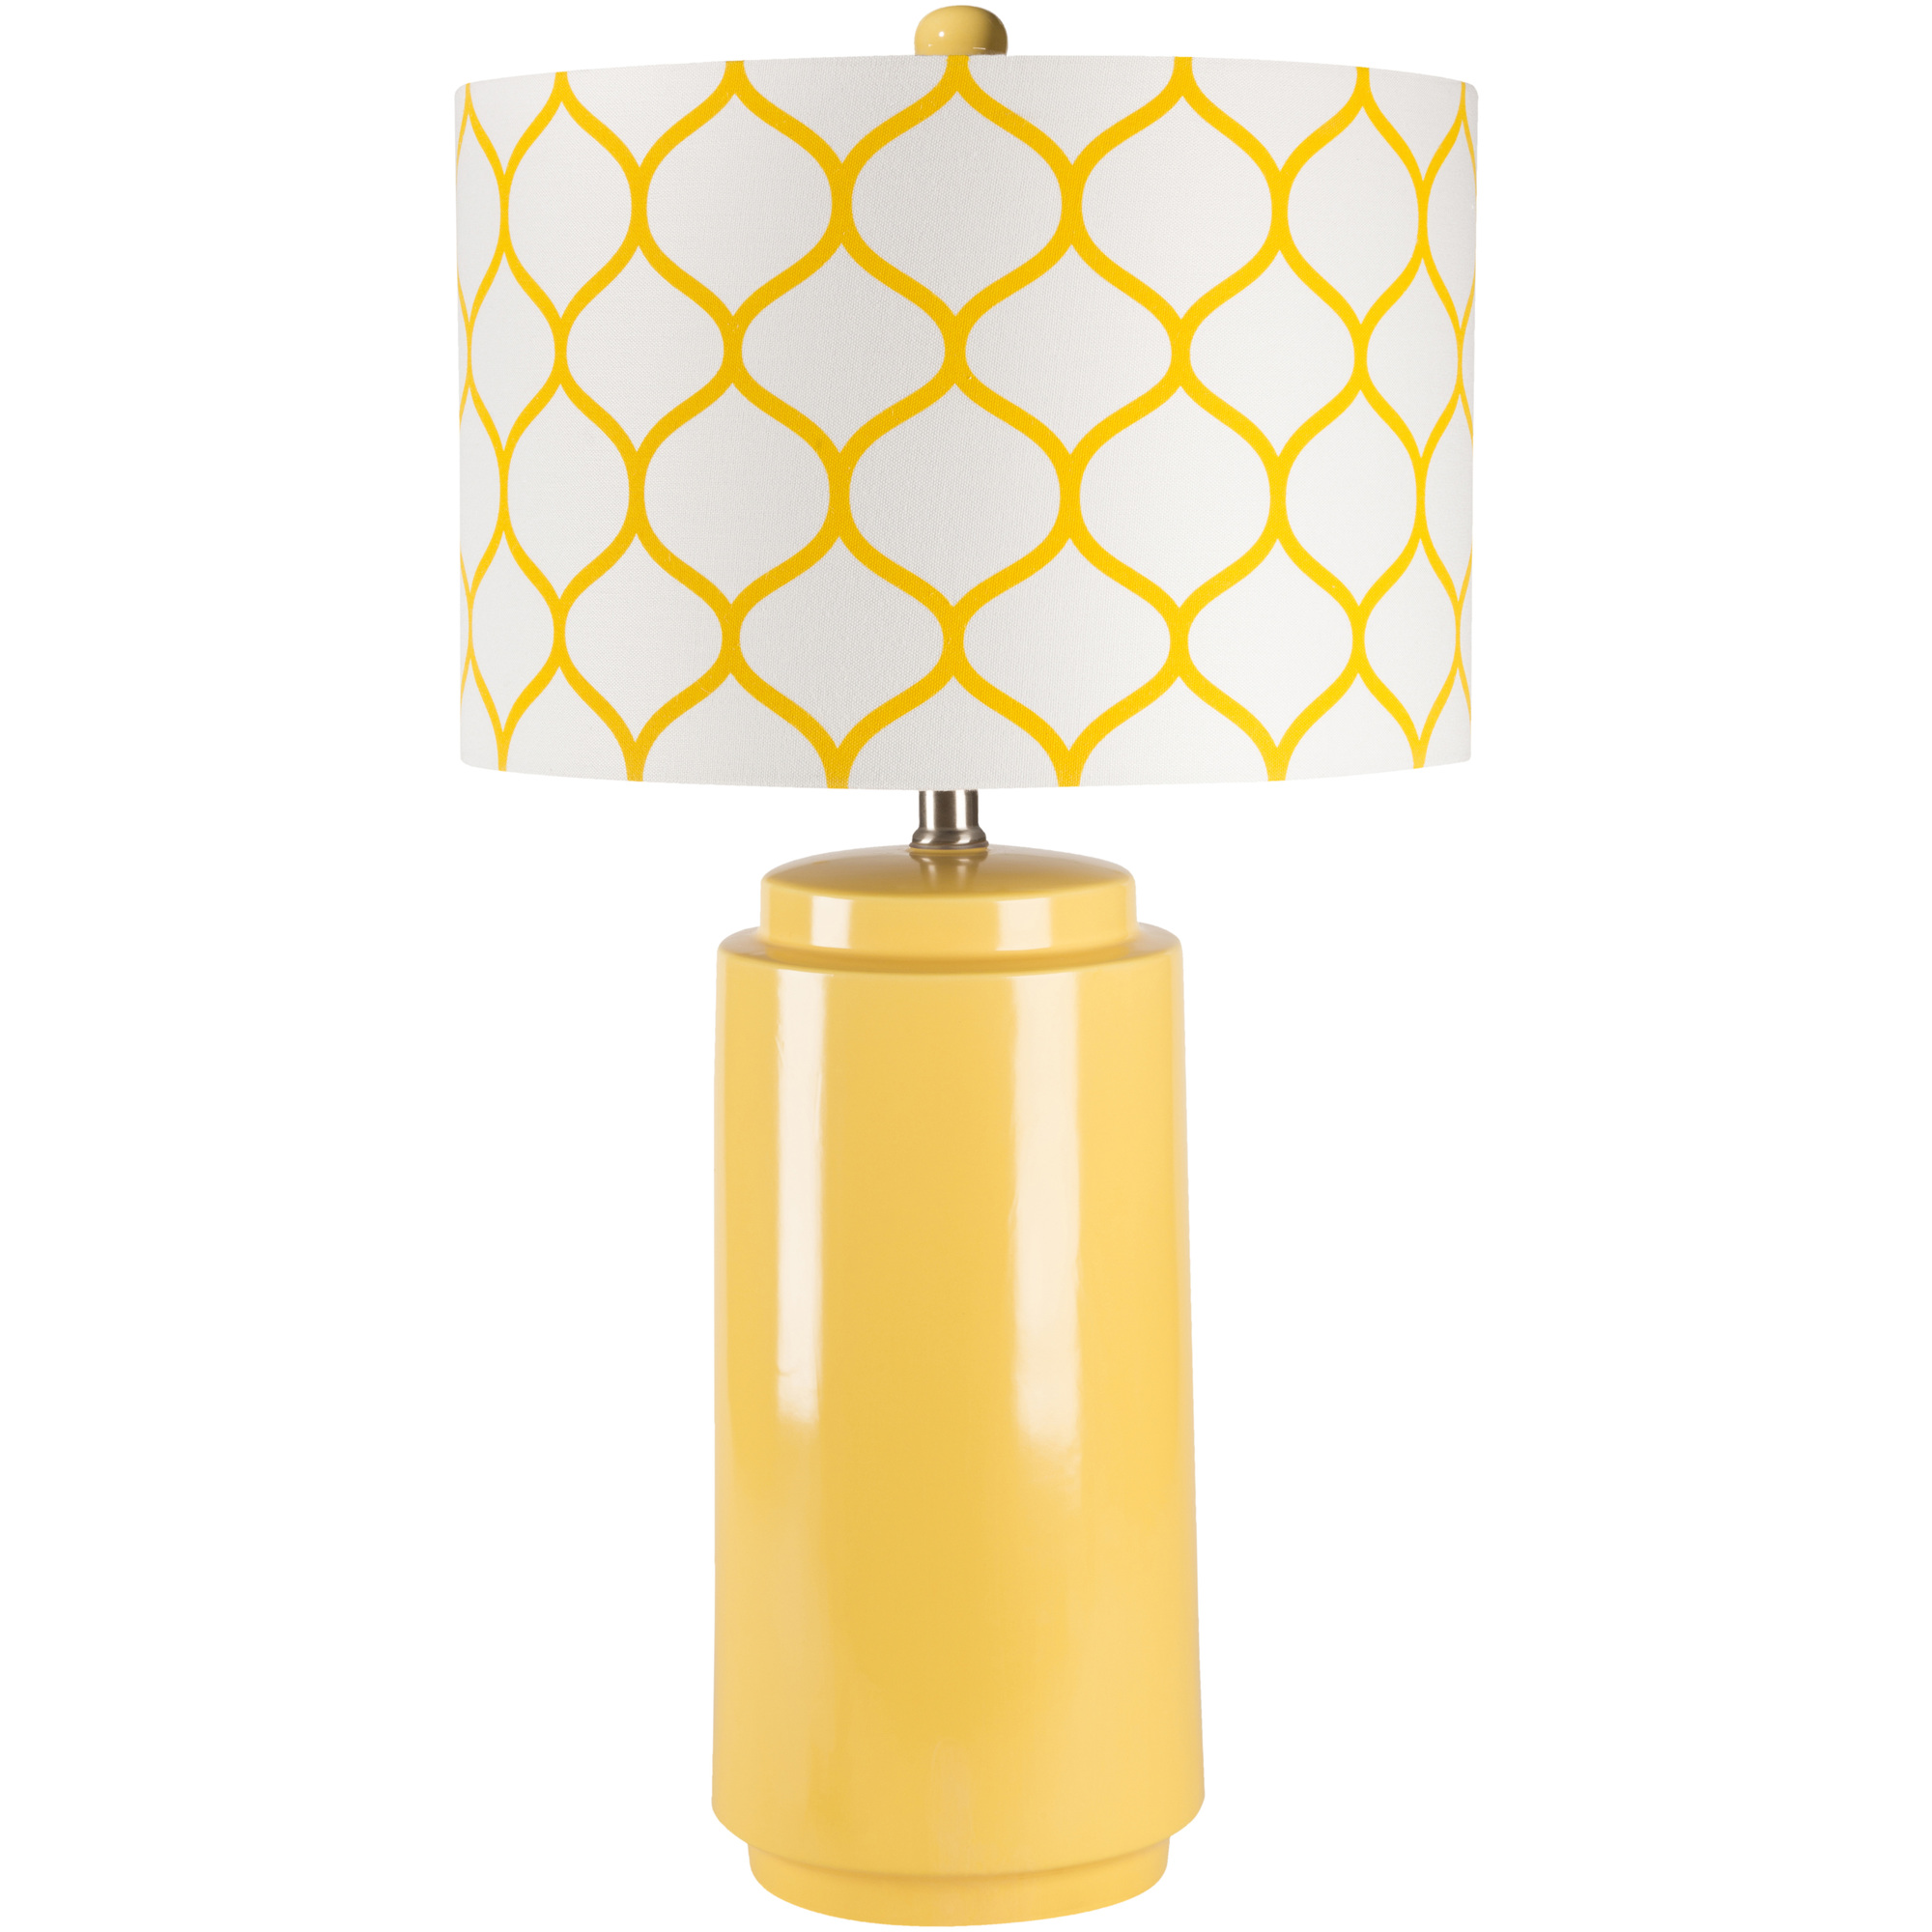 Art of Knot Cierva Novelty Table Lamp by Art of Knot